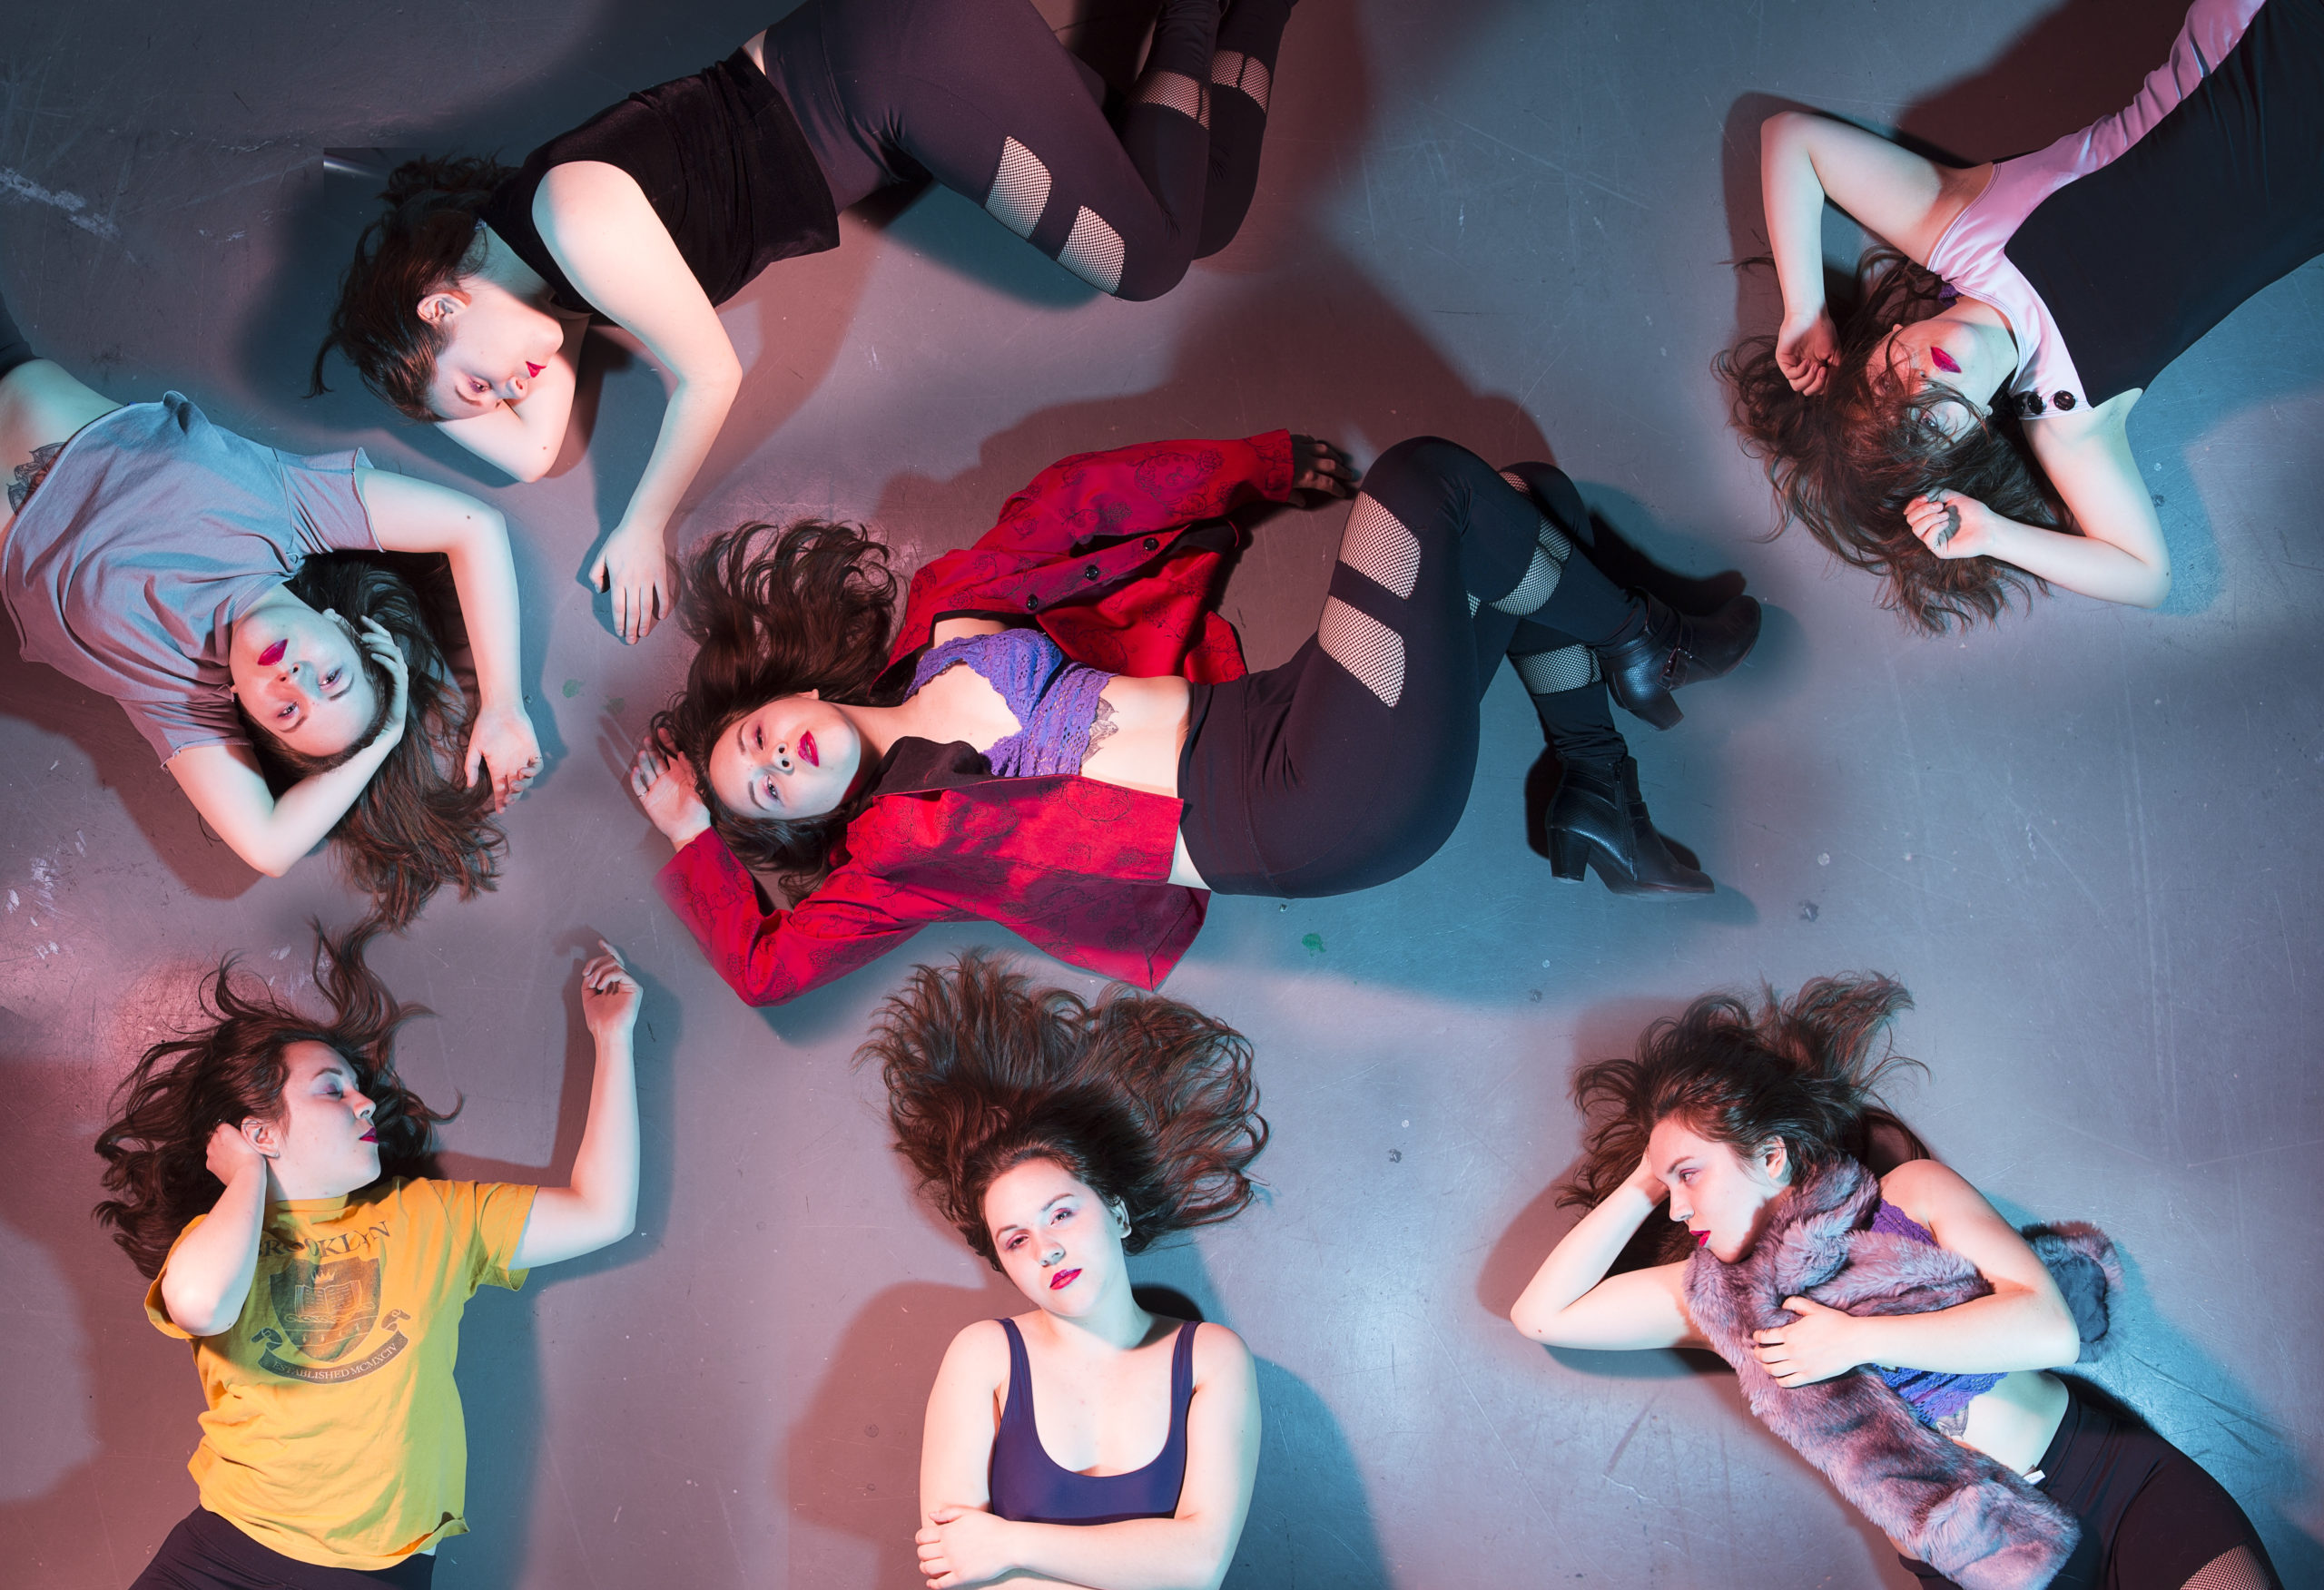 """Inspired by Beatrice eli's music video for """"girls"""" this image sepicts the artist in a variety of different """"party"""" outfits, lying on the floor, shot from a bird's eye view,"""